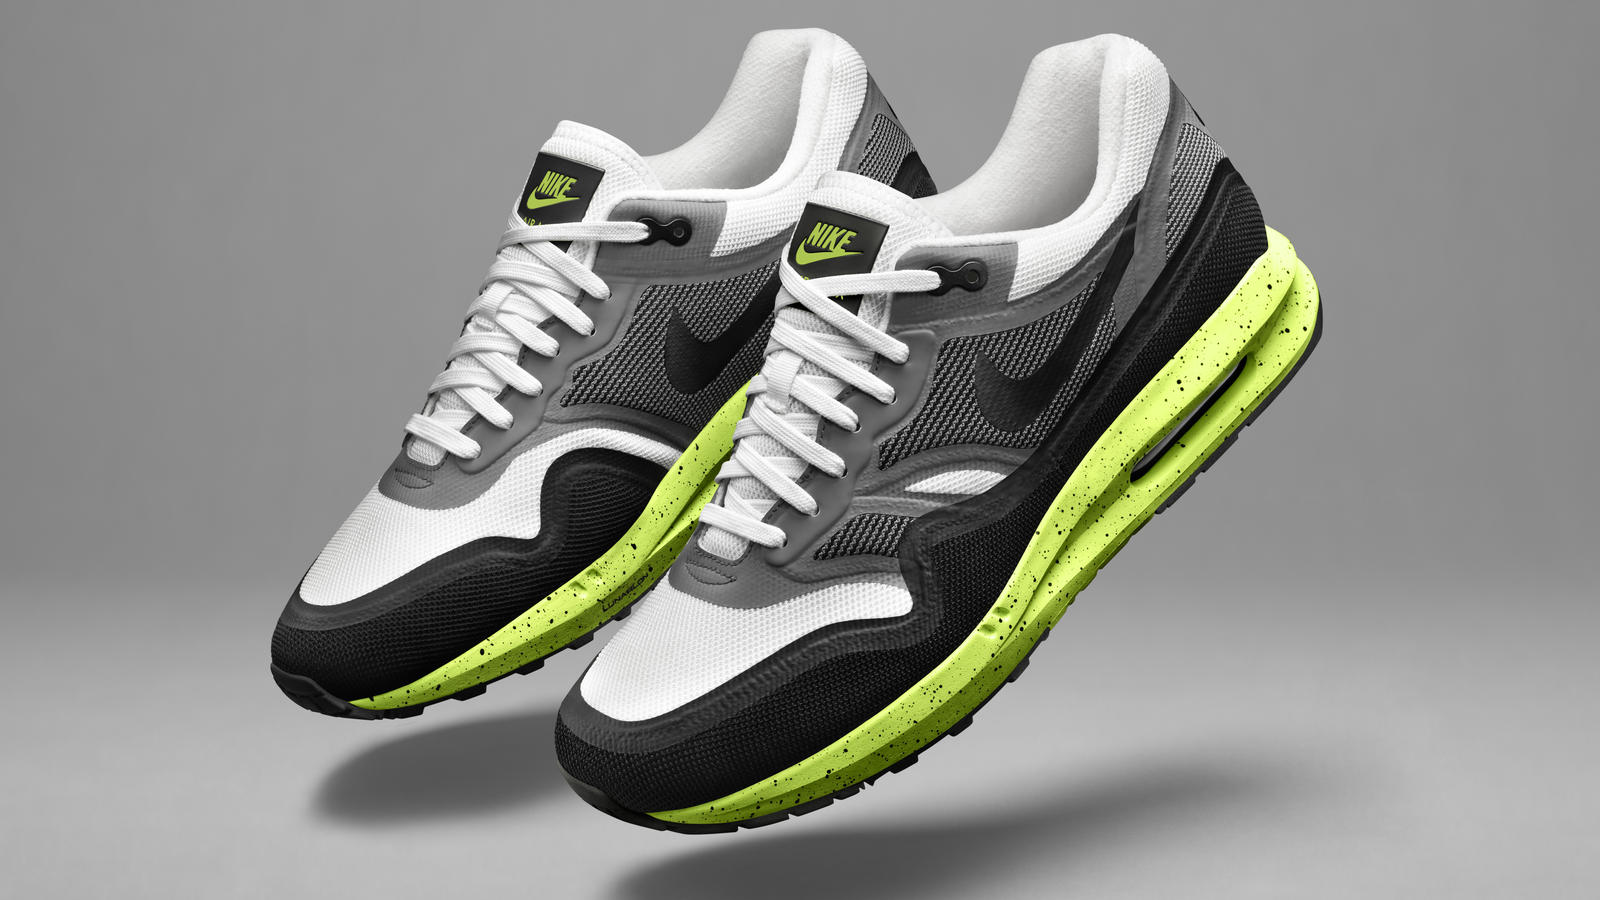 Re Revolutionized: The Air Max Lunar1 Nike News